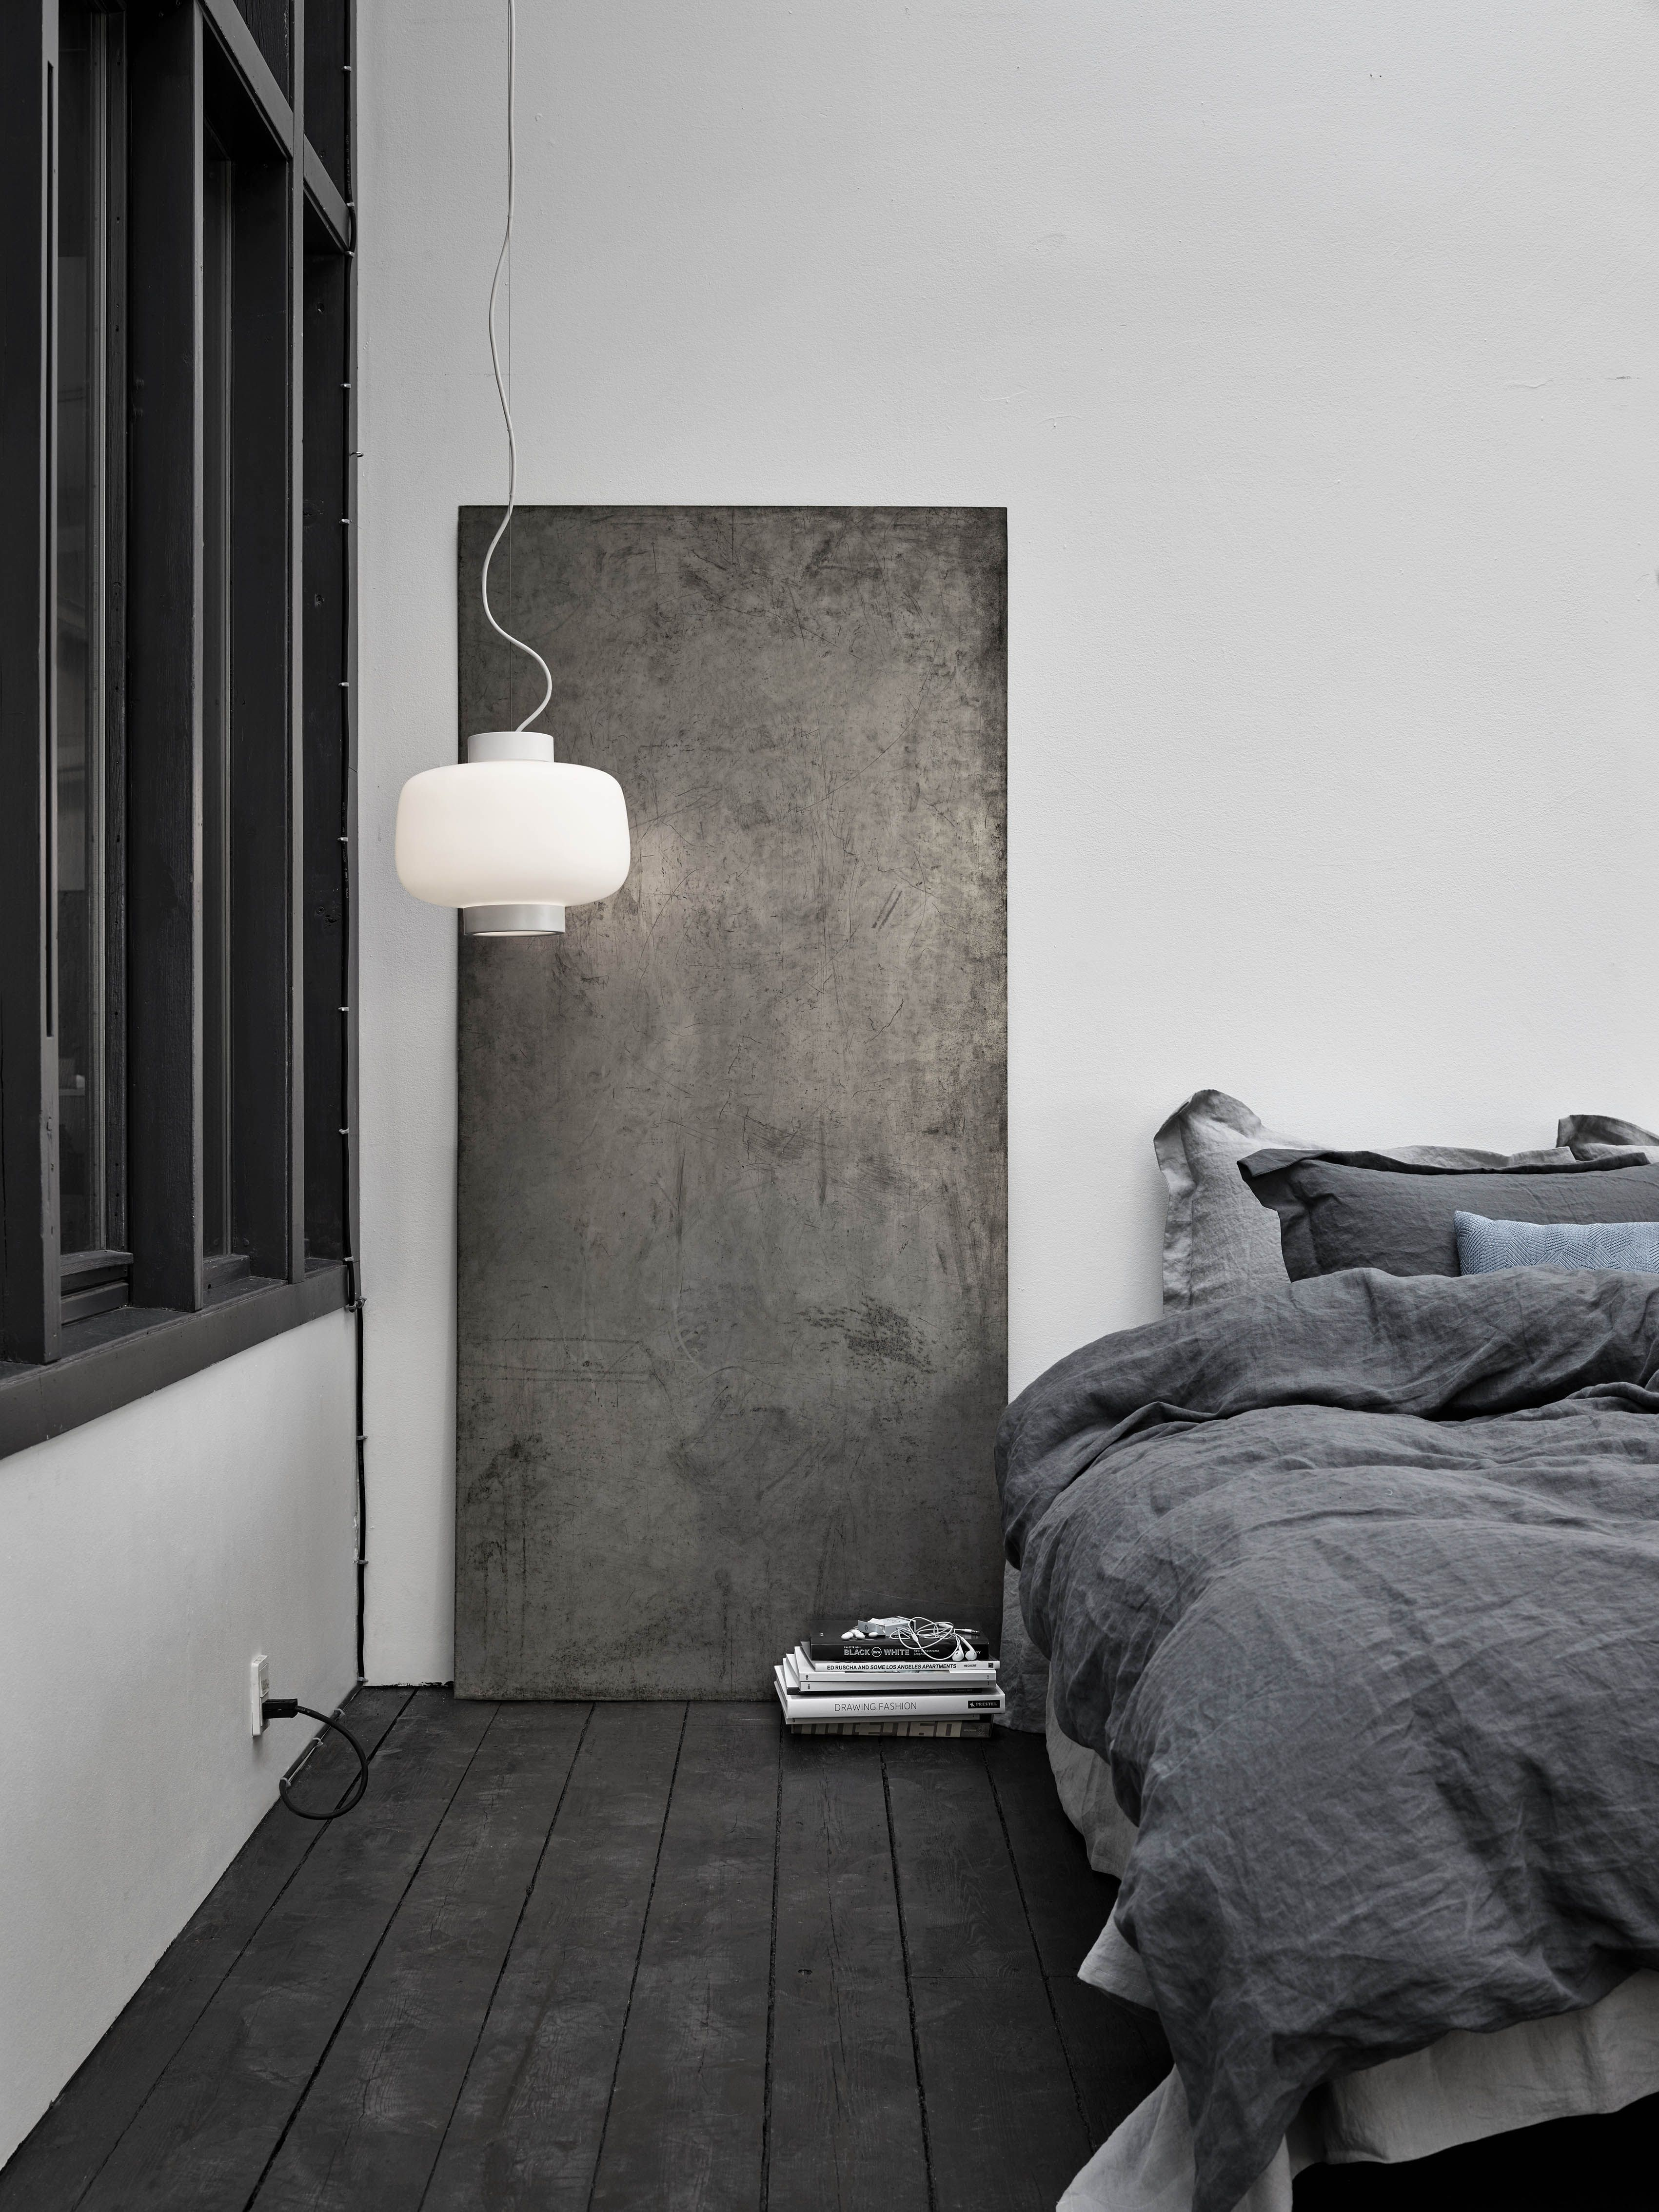 The Matte Black Floorboards, The Hues Of Dark And Light Grey Stonewashed  Linen On The